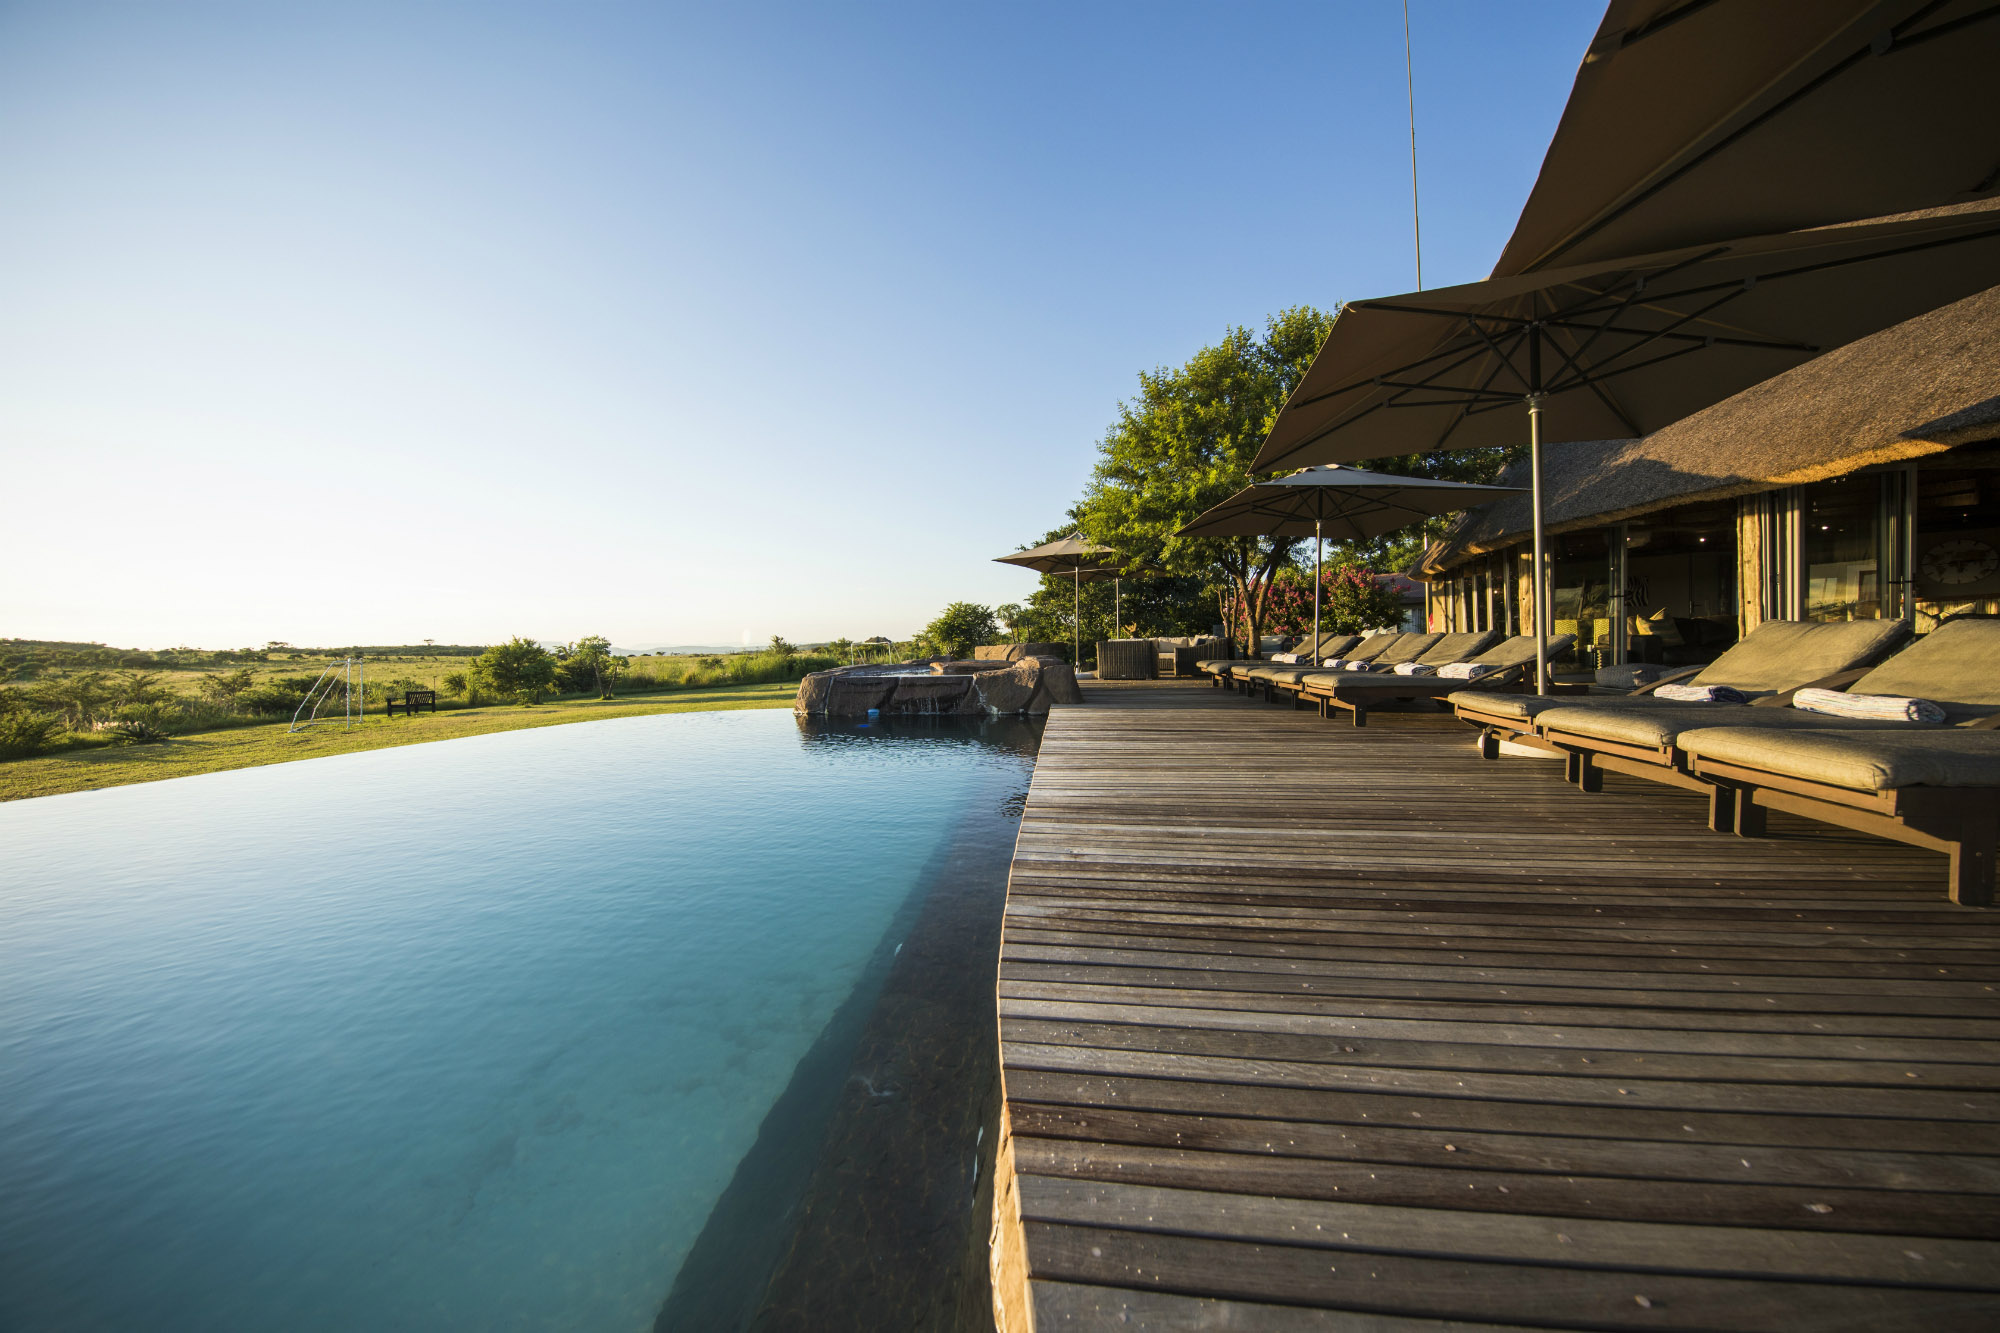 Ndaka safari lodge - pool deck